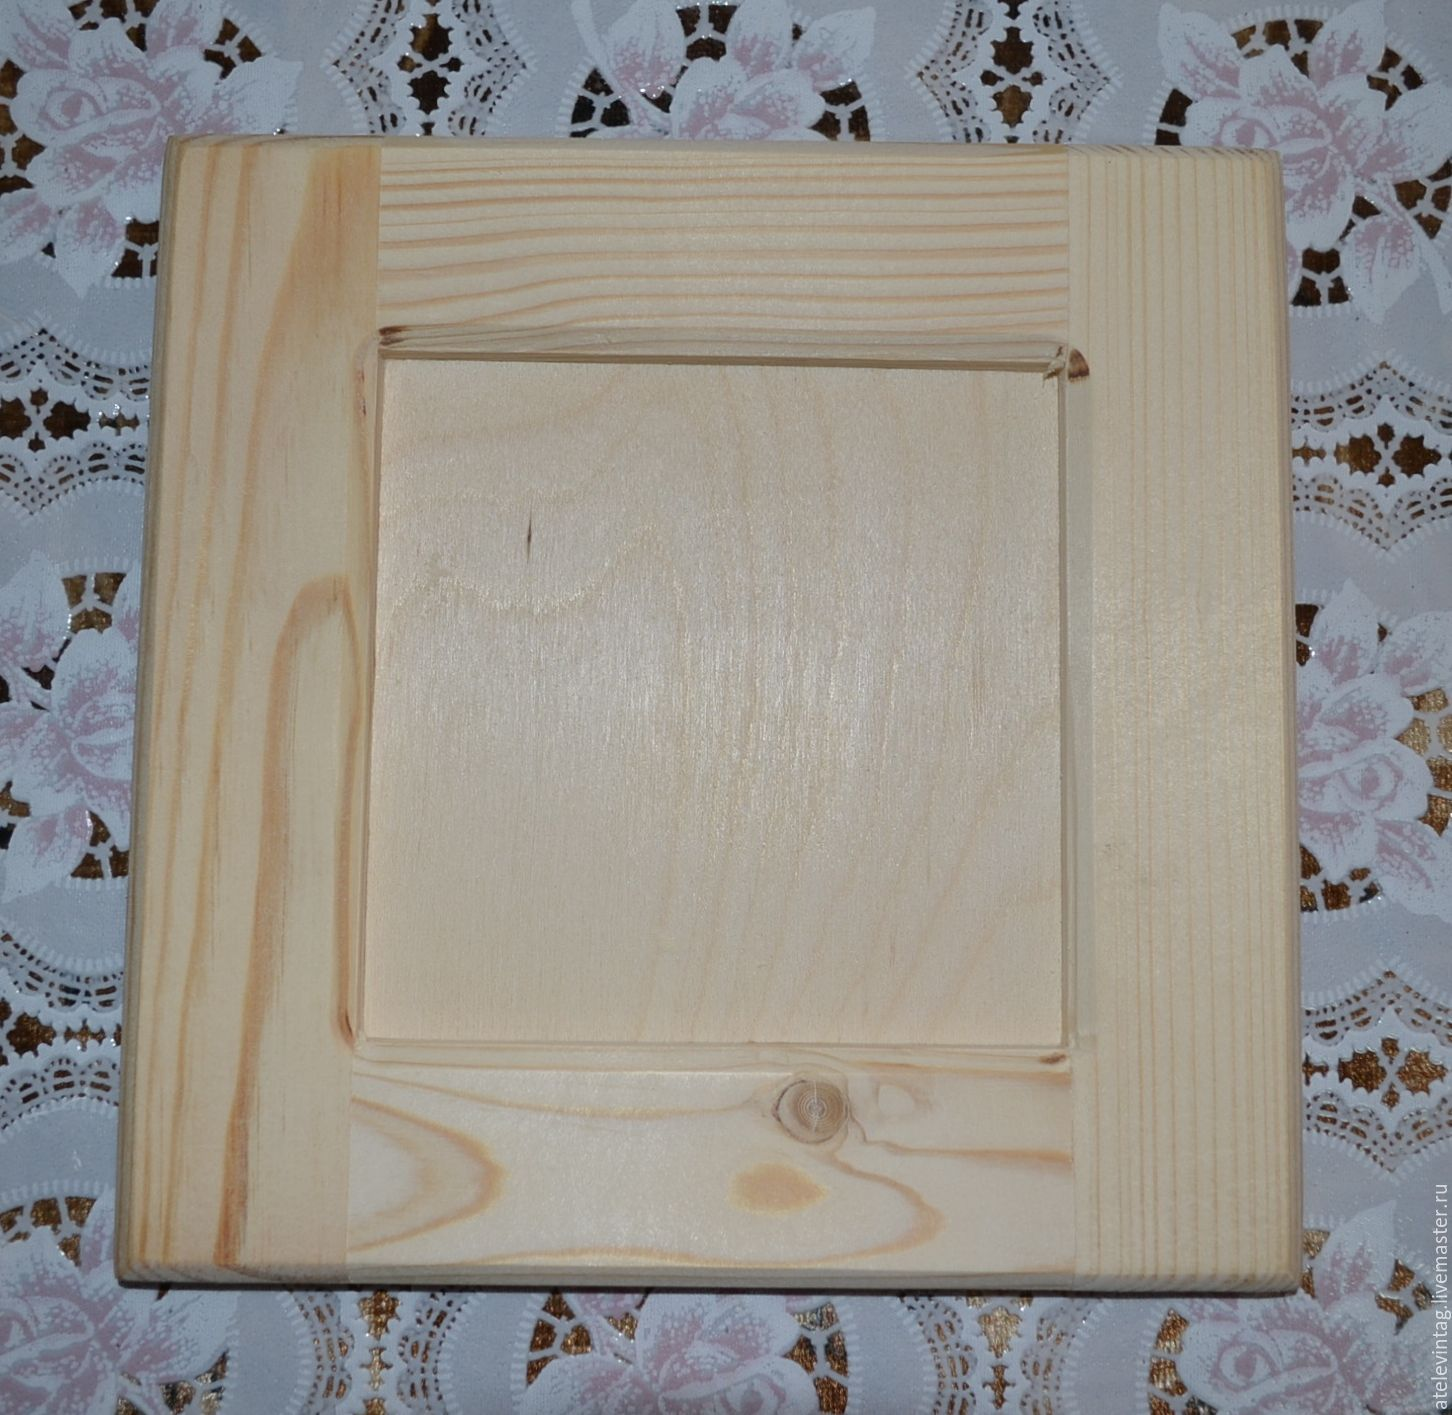 Panels 20h20h088 cm, billet, Blanks for decoupage and painting, Tula,  Фото №1